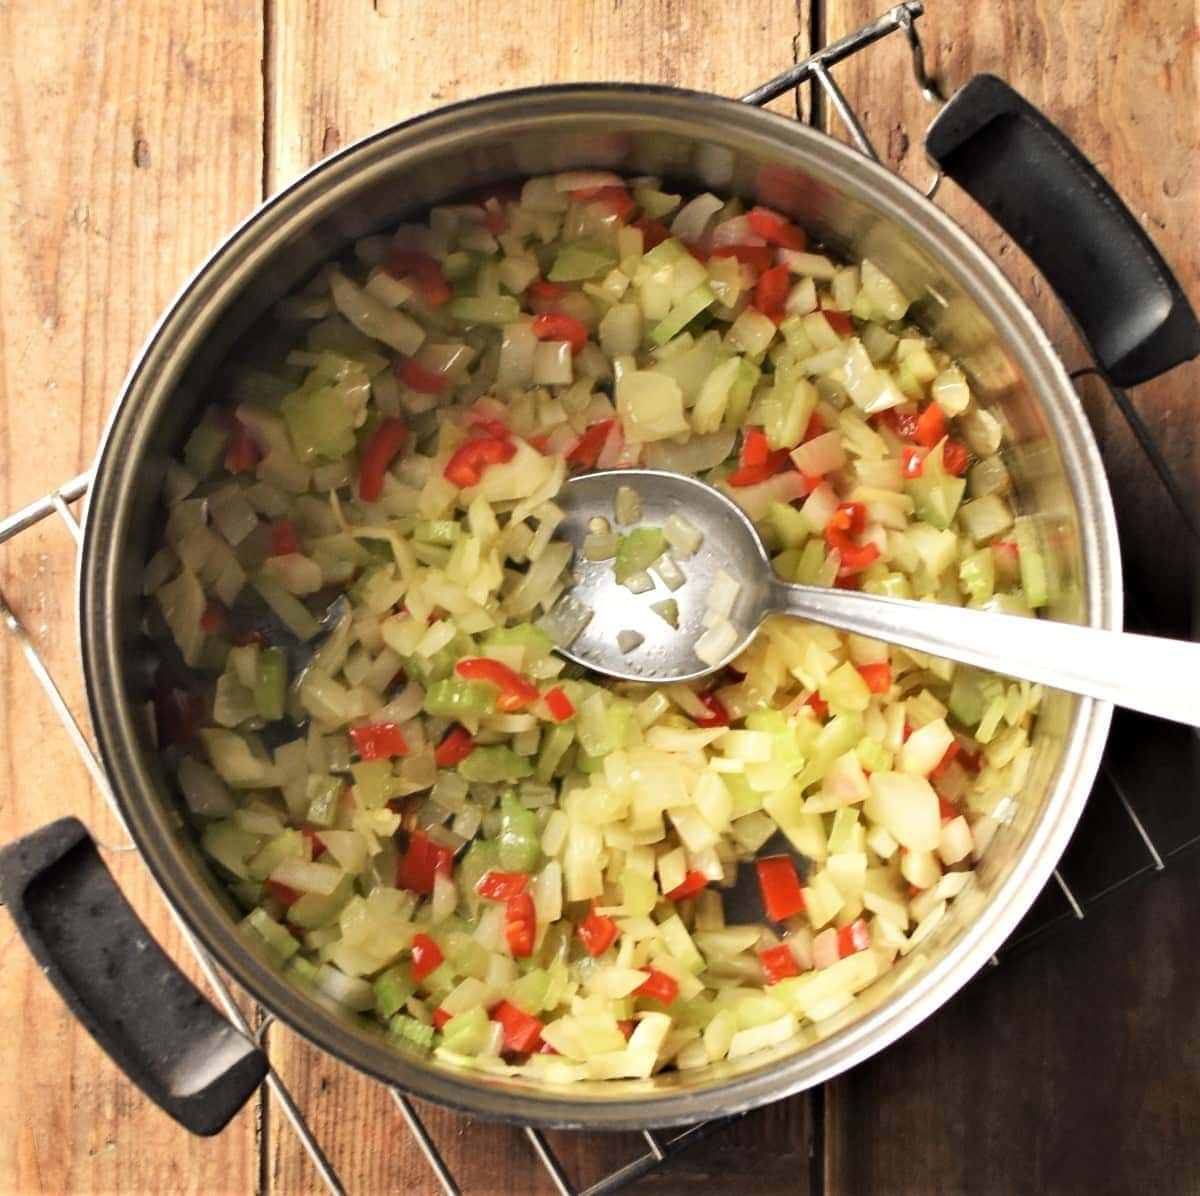 Stewed onion, celery and pepper in saucepan with spoon.